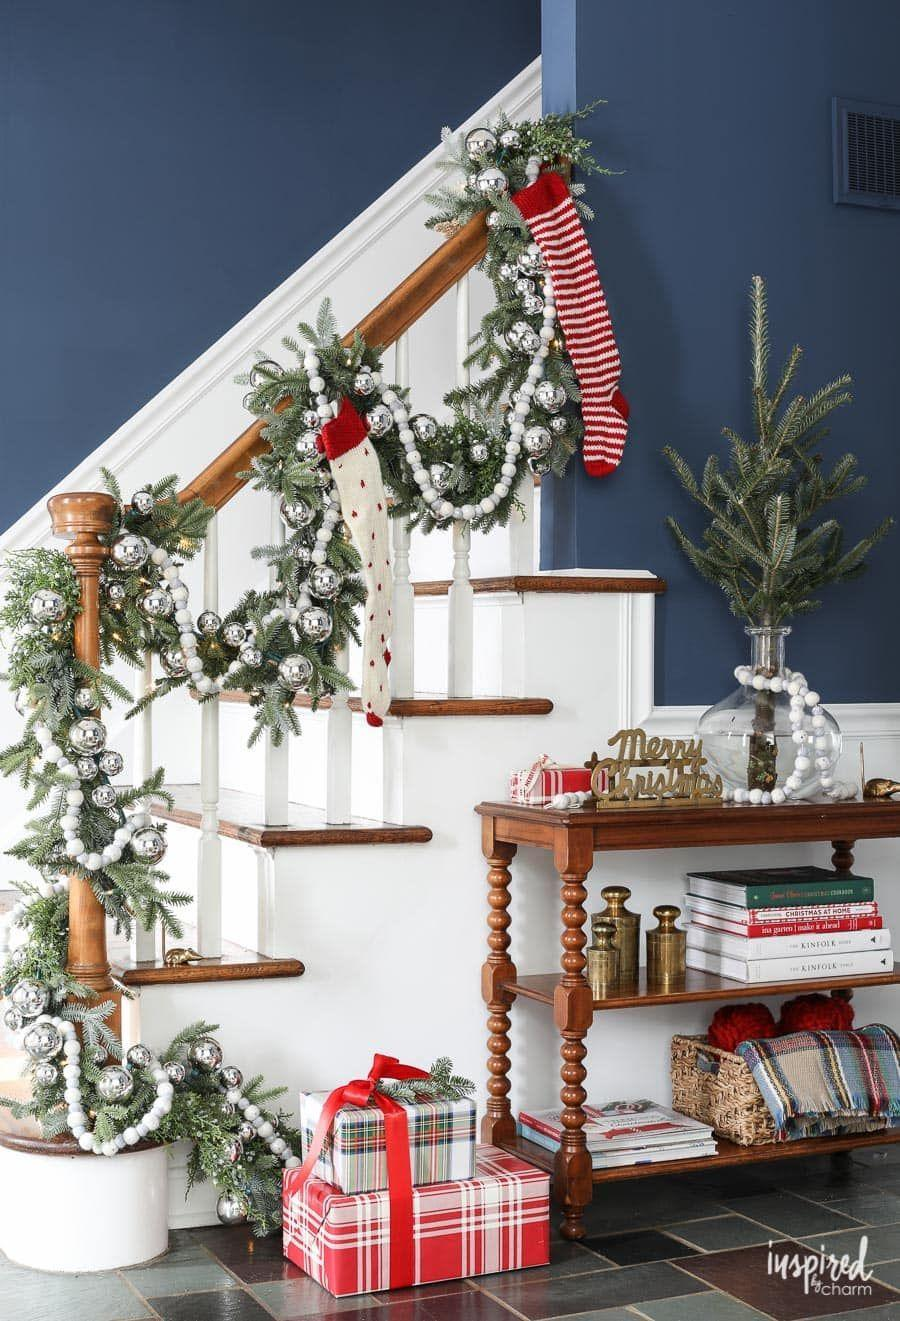 """<p>Shiny white and silver ornaments and bright red accents, like stockings, really pop against evergreen garland and dark walls. </p><p><em>See more at <a href=""""https://inspiredbycharm.com/how-i-plan-my-christmas-home-decor/"""" rel=""""nofollow noopener"""" target=""""_blank"""" data-ylk=""""slk:Inspired By Charm"""" class=""""link rapid-noclick-resp"""">Inspired By Charm</a>.</em></p><p><a class=""""link rapid-noclick-resp"""" href=""""https://www.amazon.com/Clever-Creations-Shatterproof-Christmas-Decorations/dp/B01IU62LCK?tag=syn-yahoo-20&ascsubtag=%5Bartid%7C10072.g.34479907%5Bsrc%7Cyahoo-us"""" rel=""""nofollow noopener"""" target=""""_blank"""" data-ylk=""""slk:SHOP ORNAMENTS"""">SHOP ORNAMENTS</a></p>"""